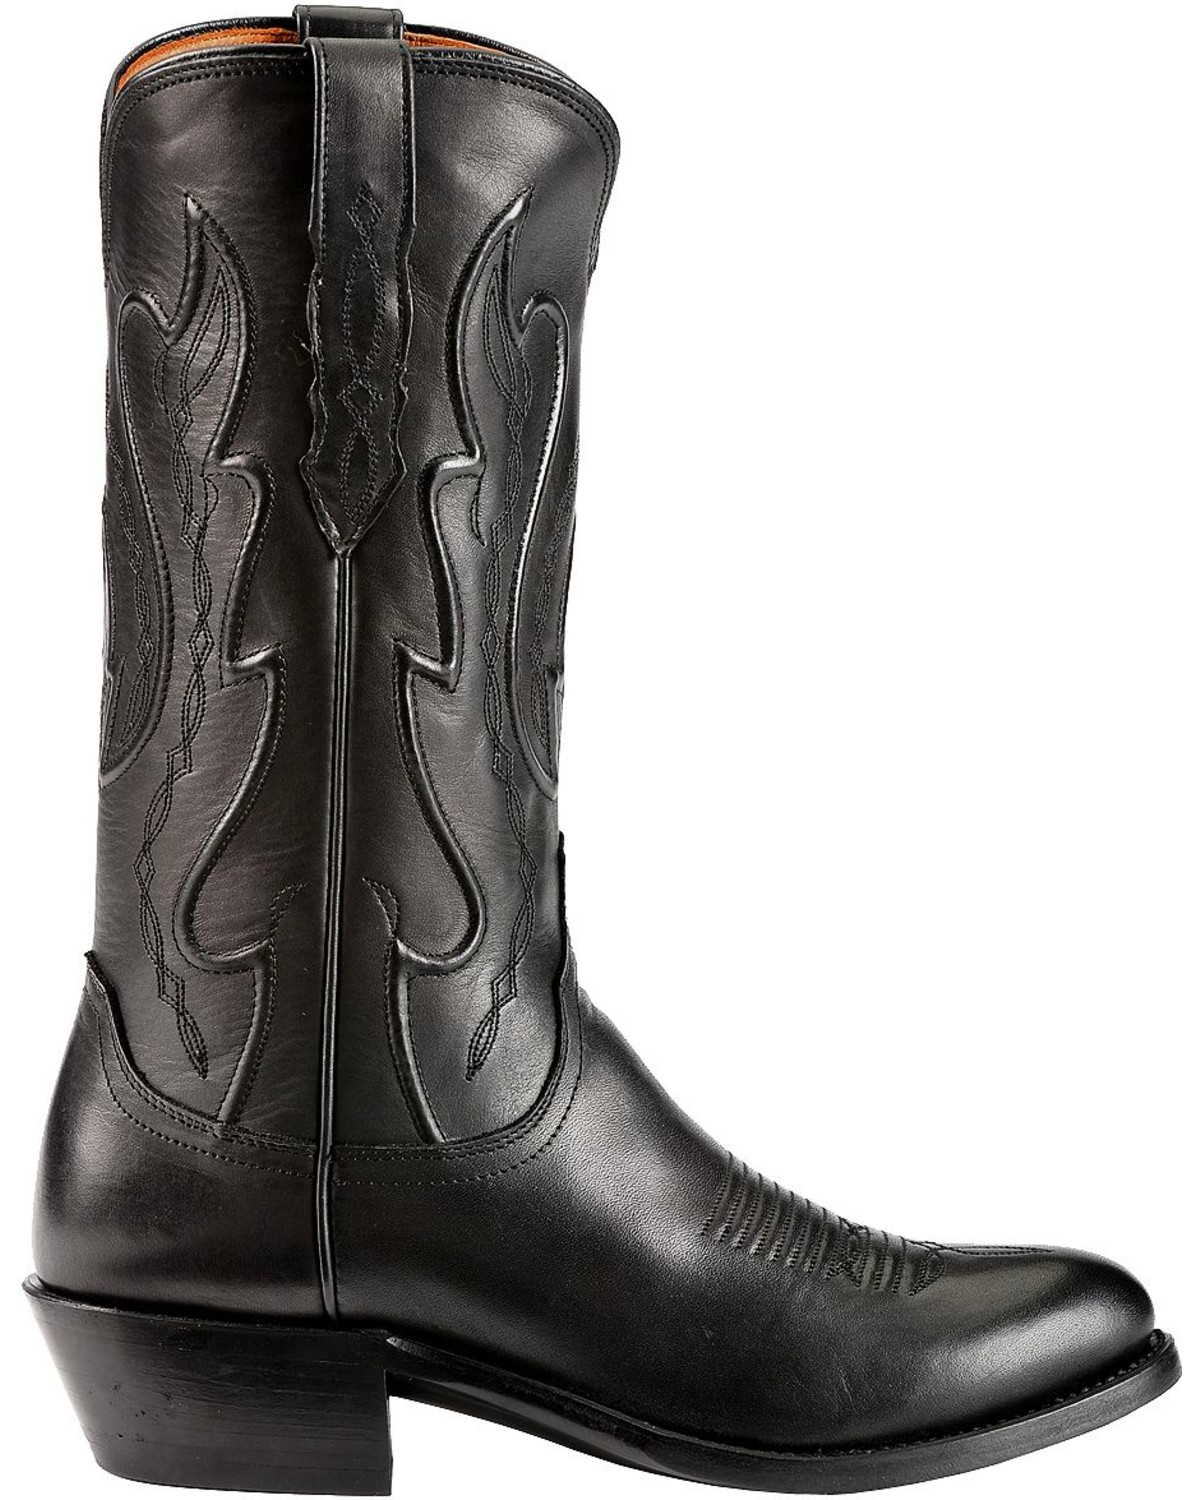 Lucchese Men's Embroidered Western Boots